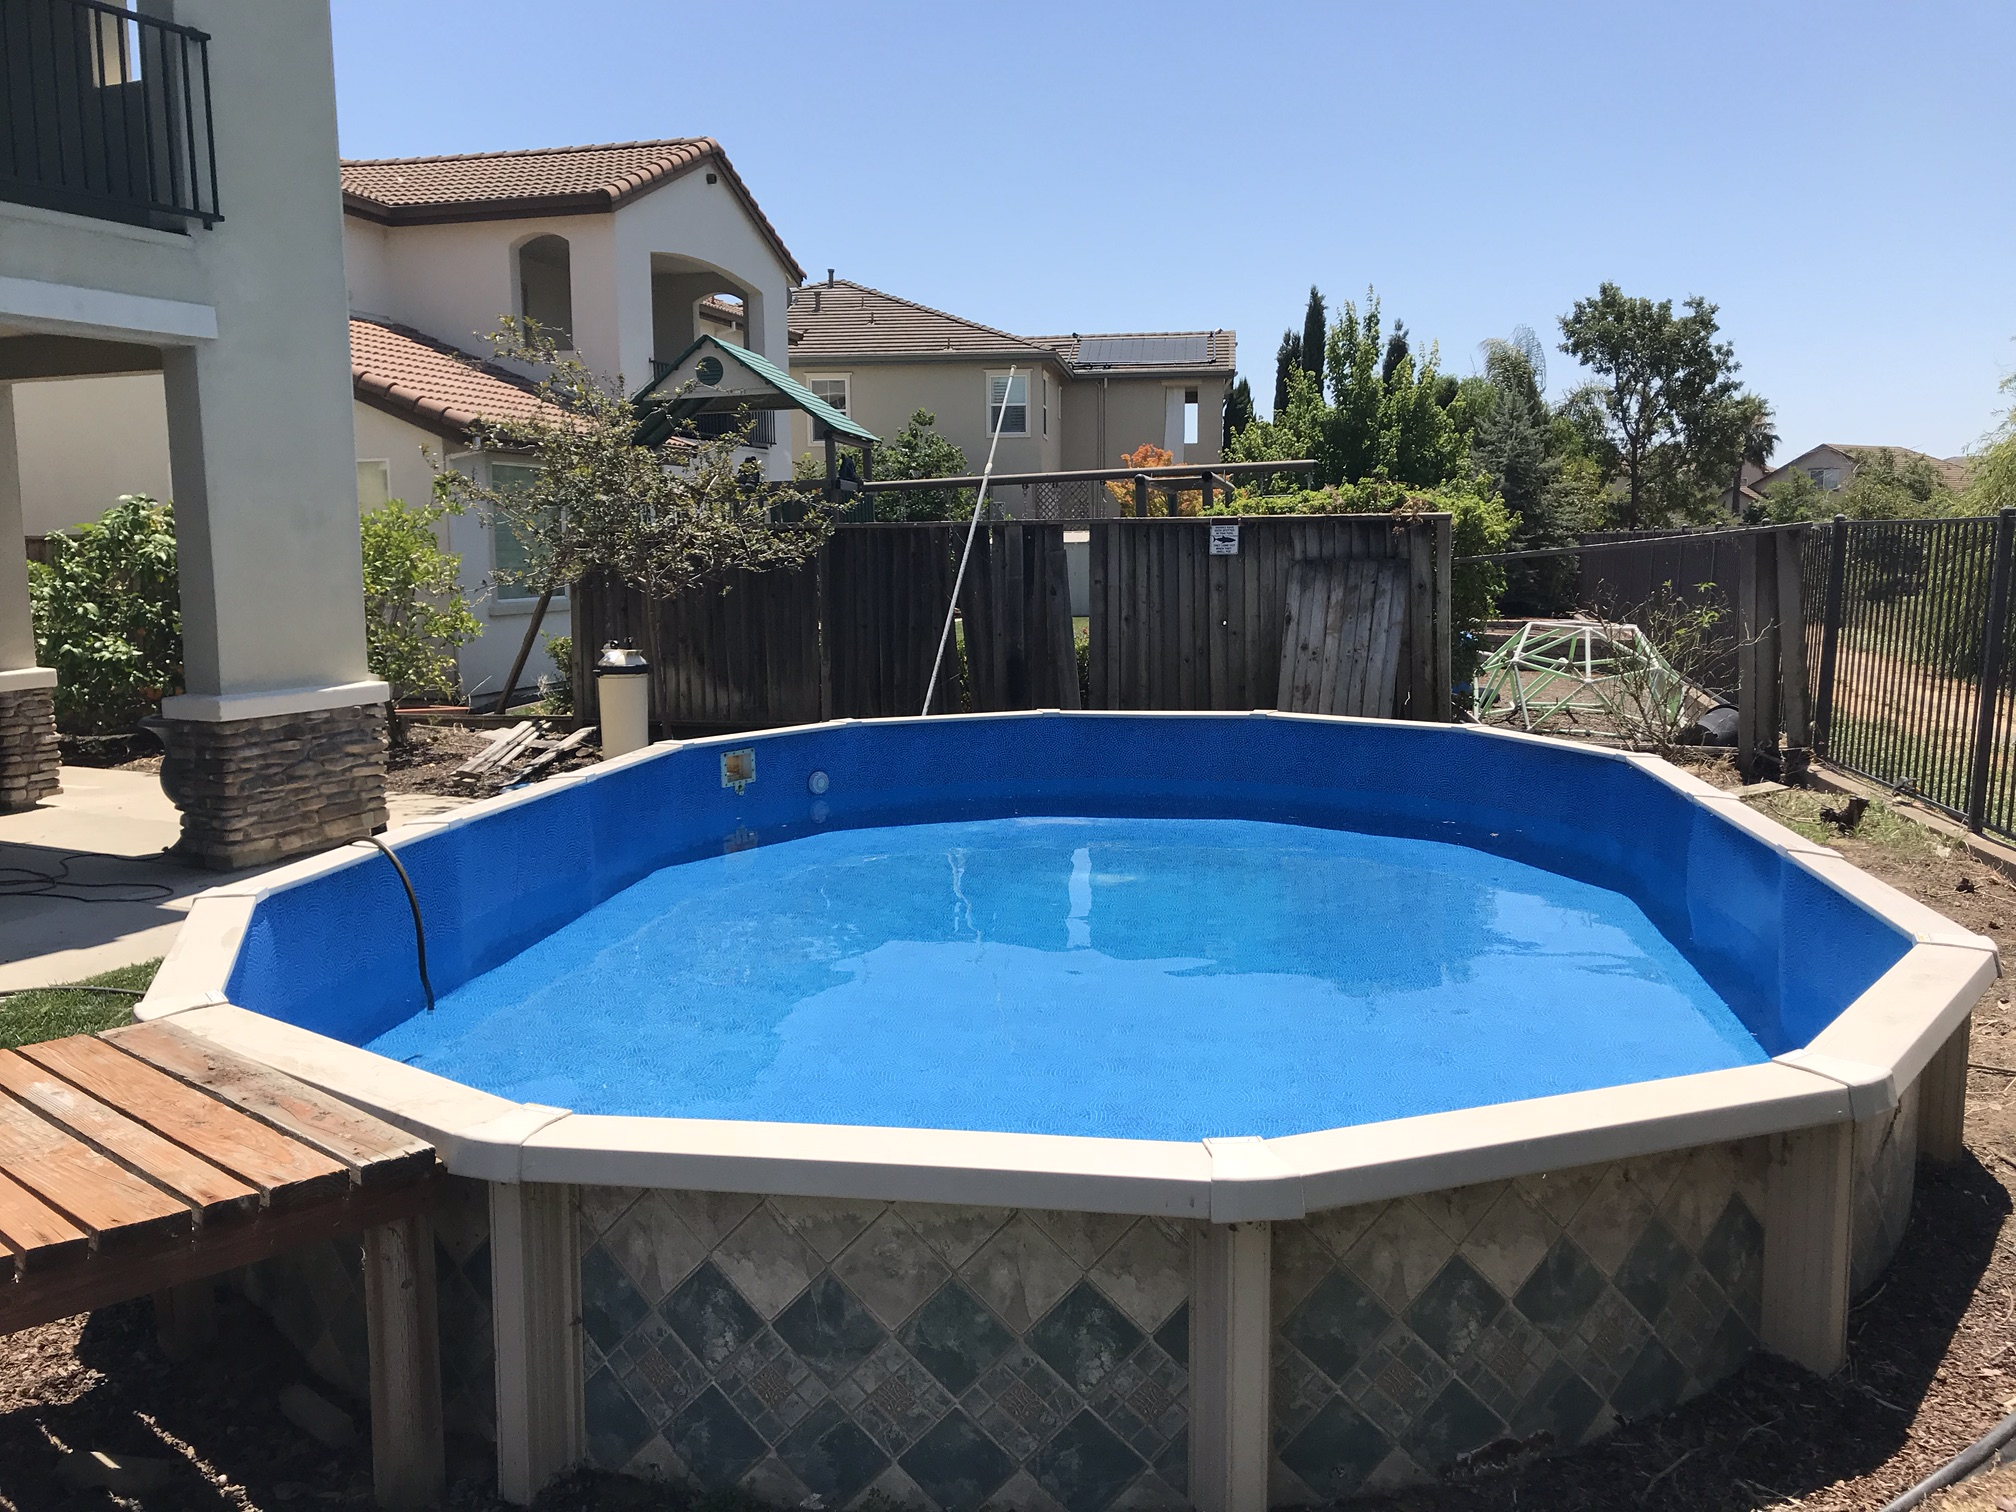 16x24 Above Ground Pool Liner Installation In West